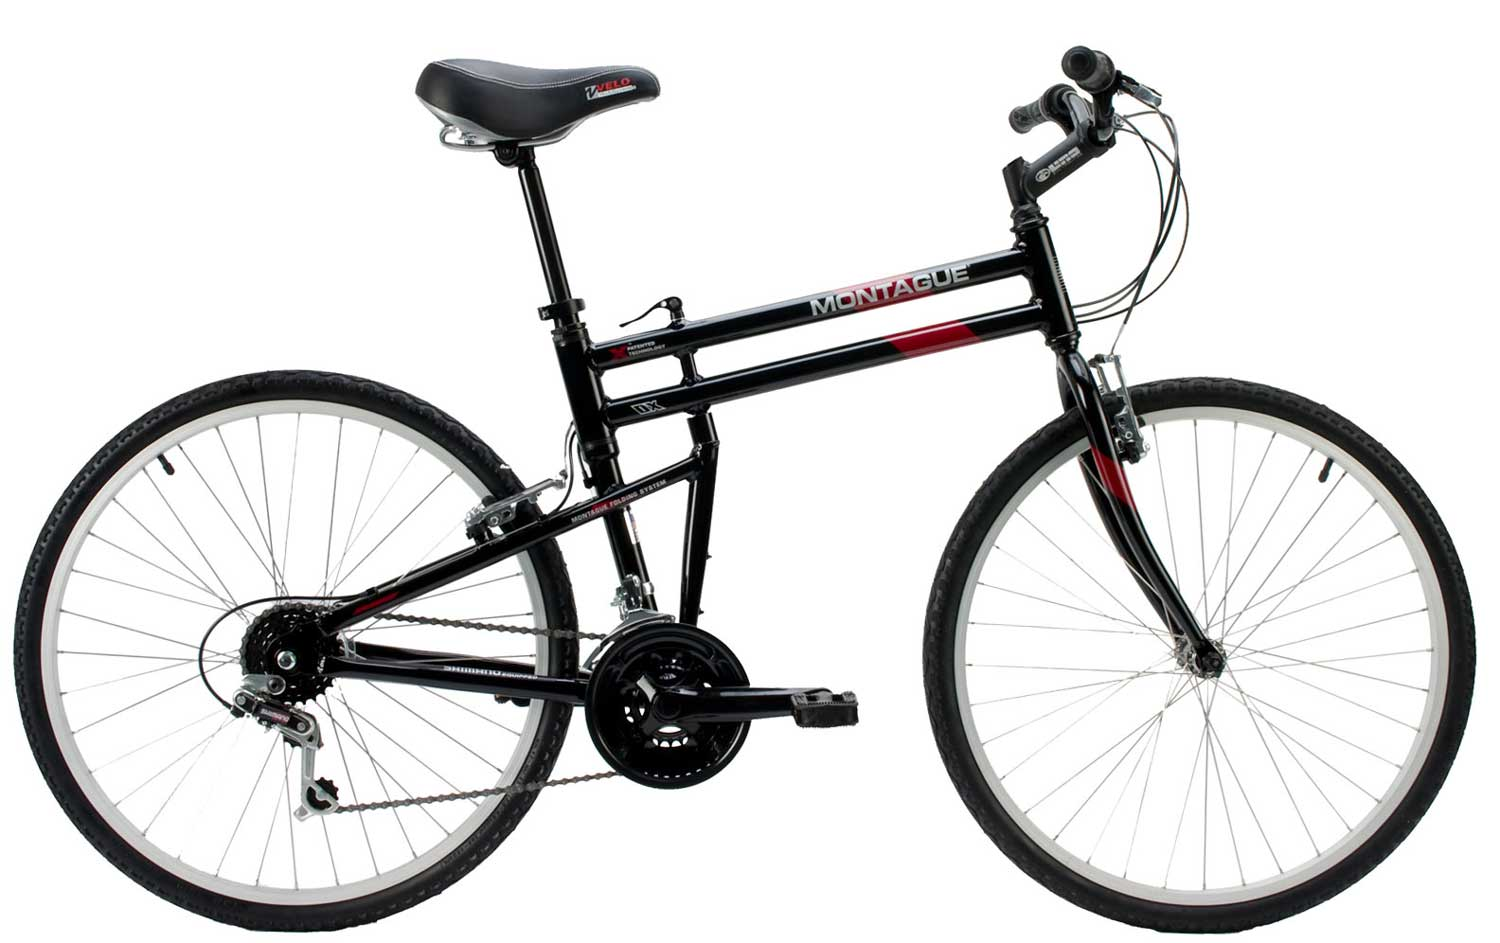 2007 DX Crossover Folding Bike